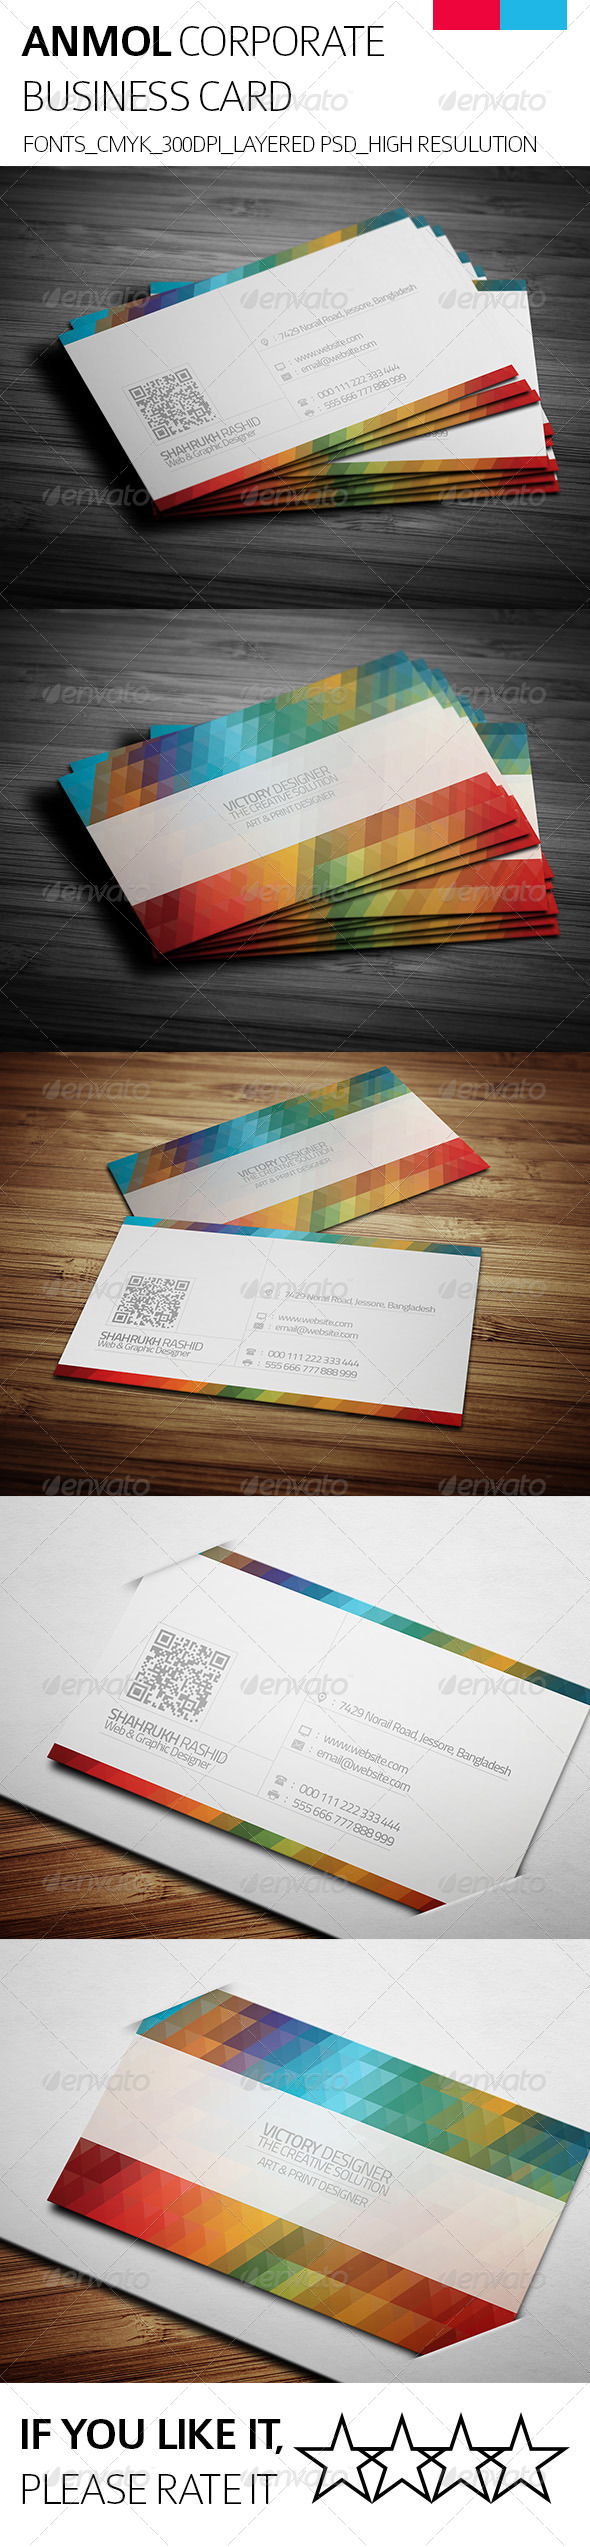 Anmol & Corporate Business Card - Corporate Business Cards